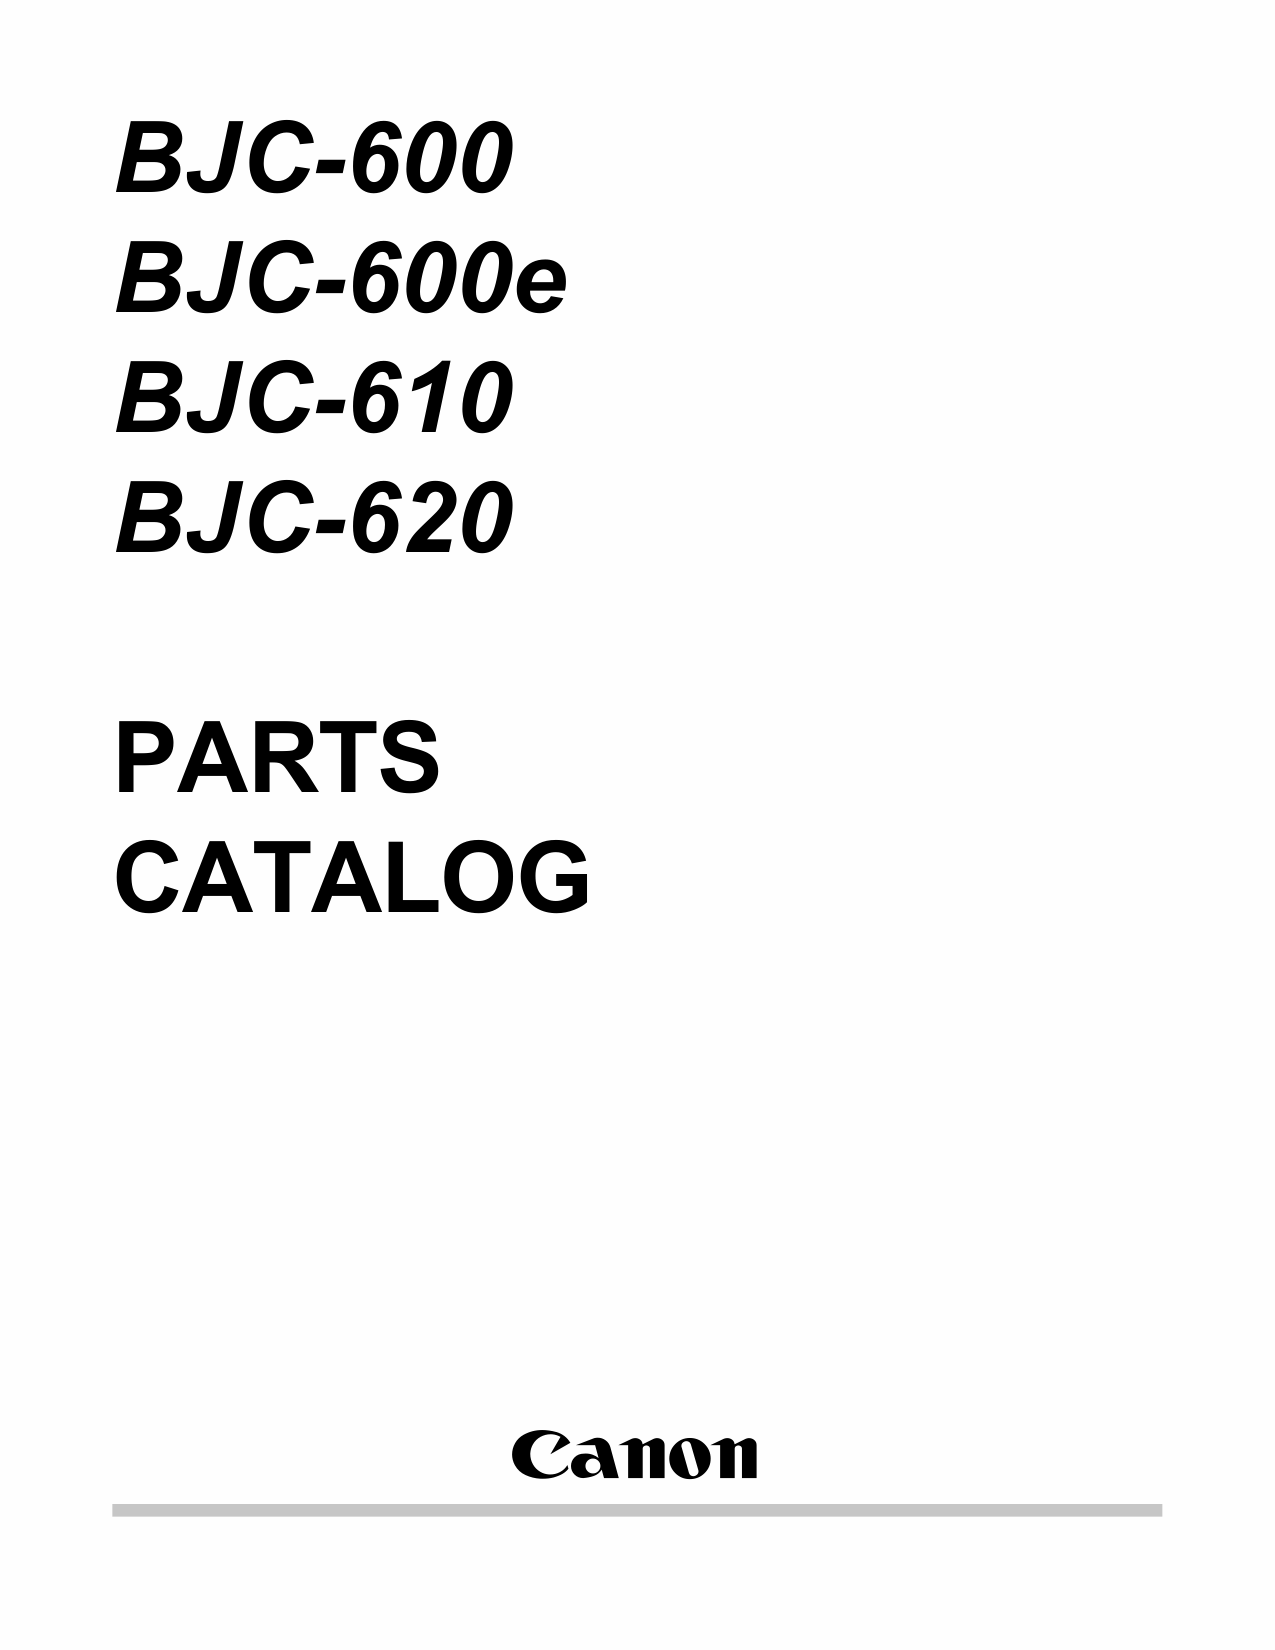 Canon BubbleJet BJC-600 600e 610 620 Parts Catalog Manual